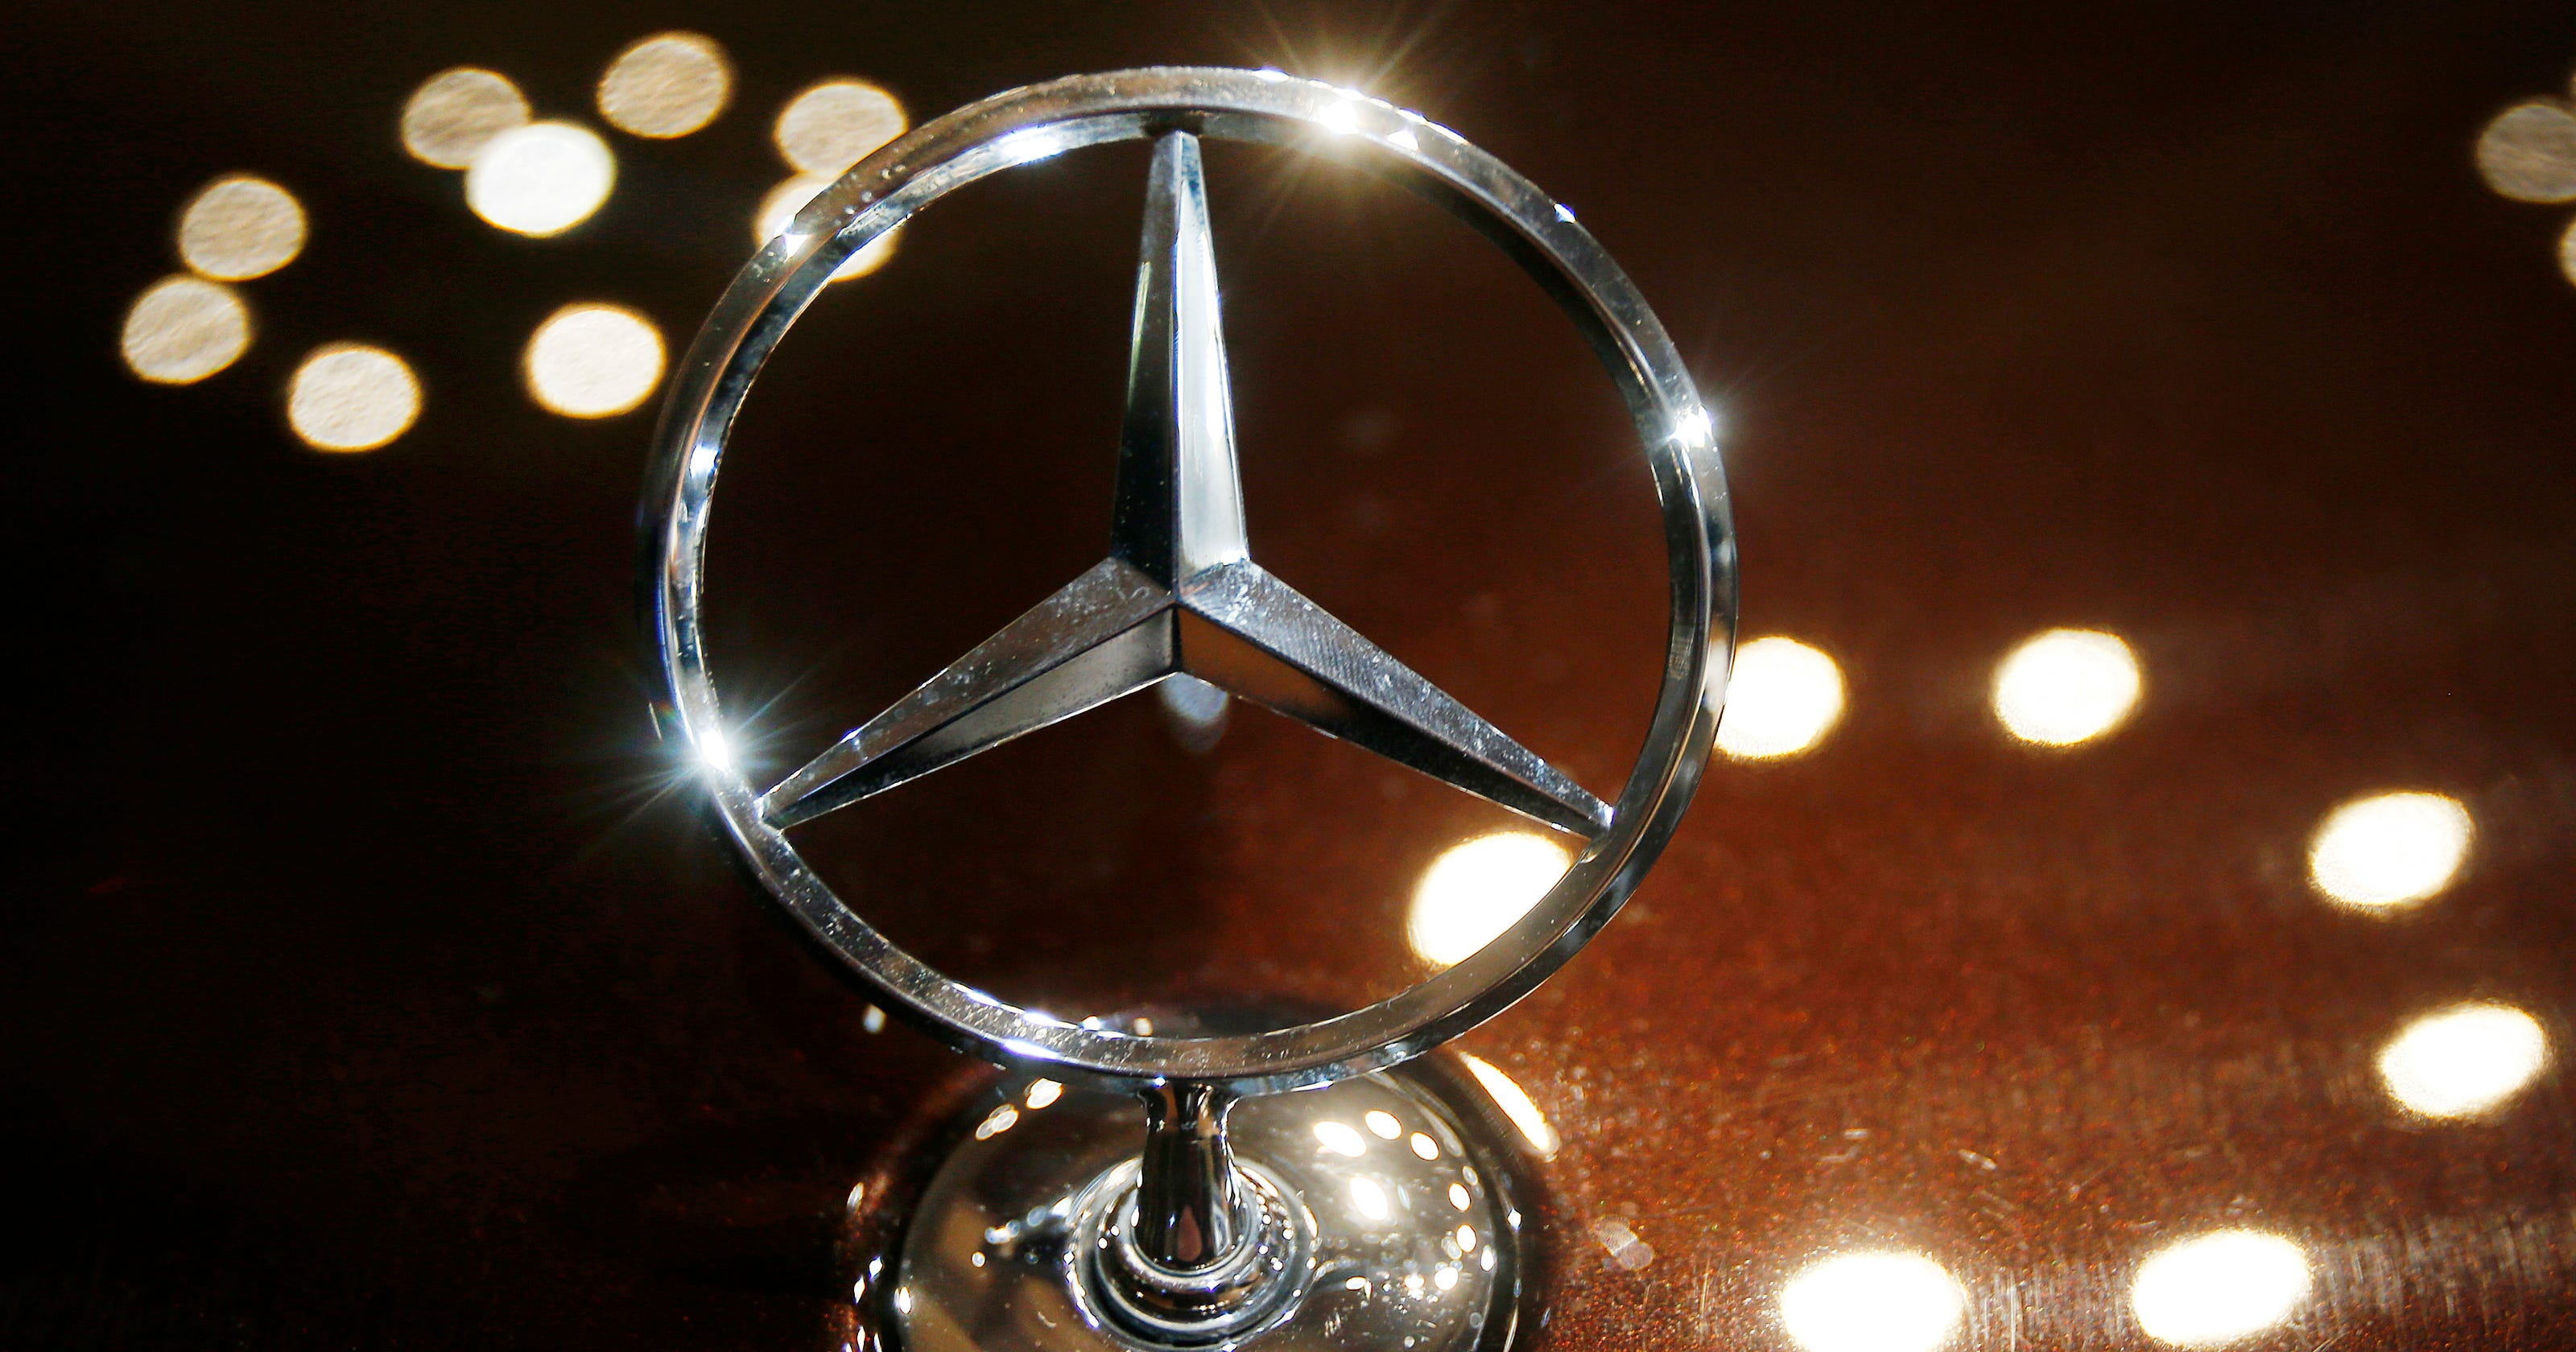 Mercedes-Benz parent Daimler issues huge recall as diesel emissions